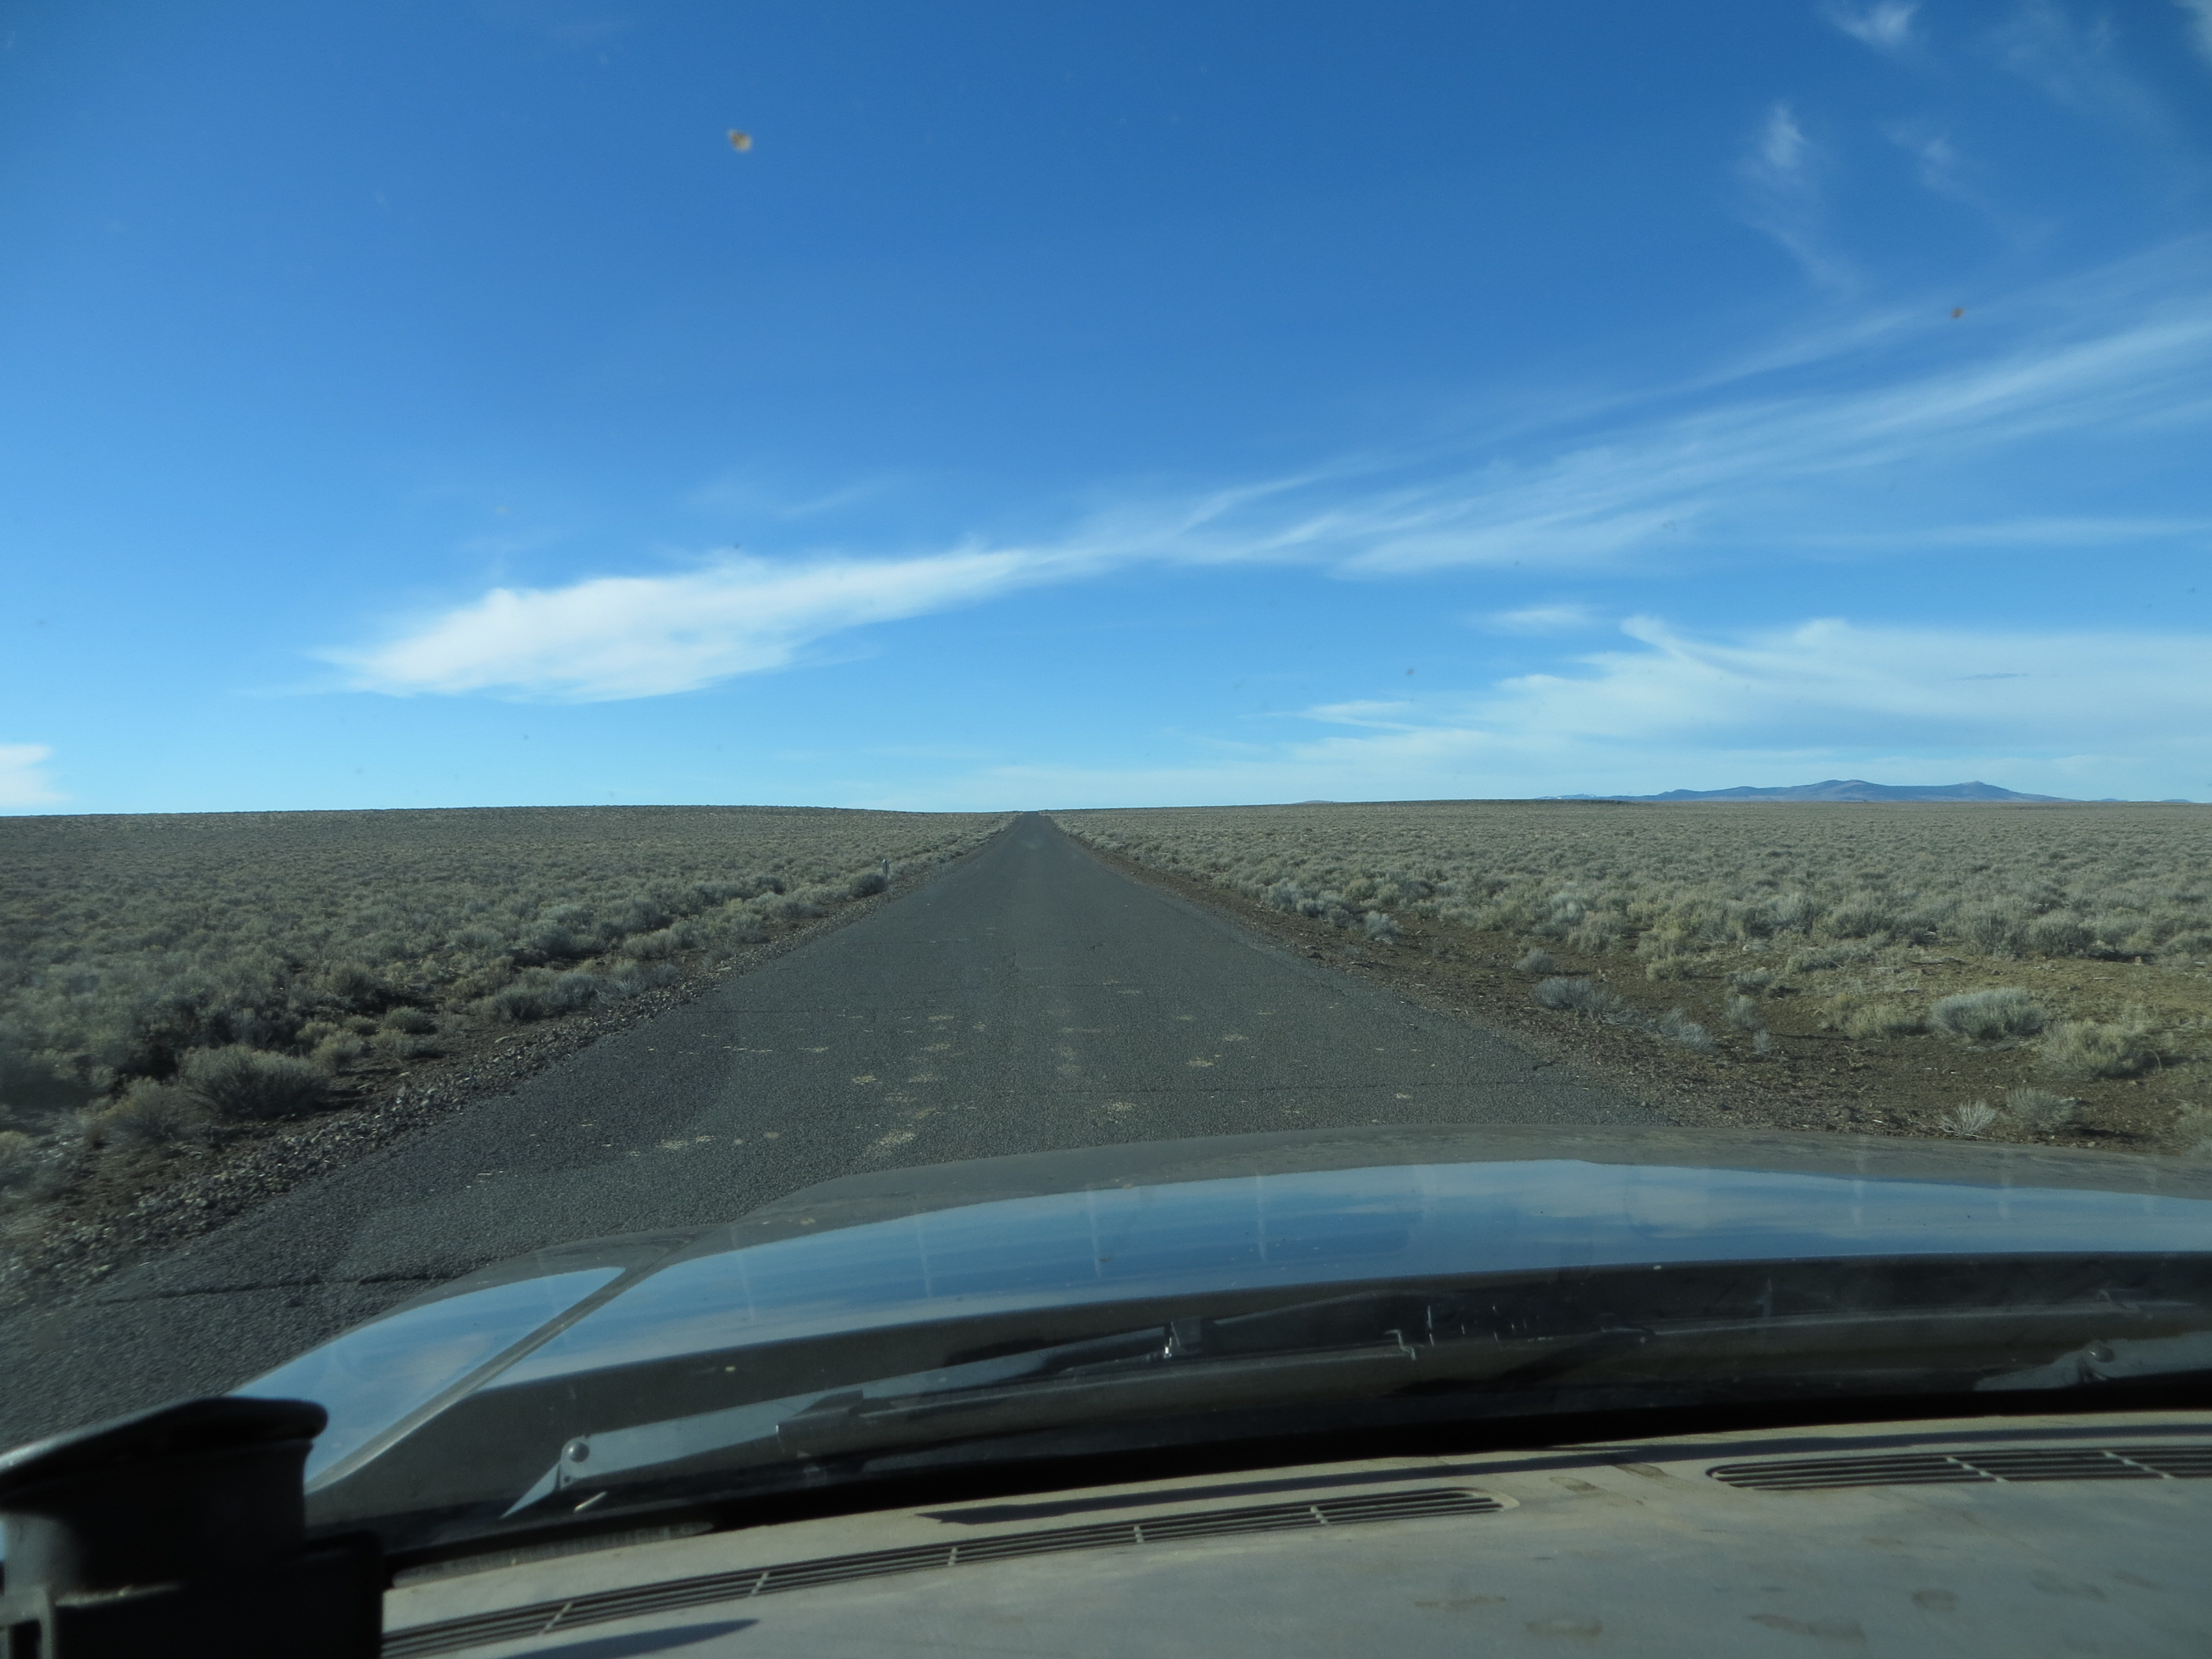 The Road Goes on Forever (apologies to Robert Earl Keen). Photo by Jim Cornelius